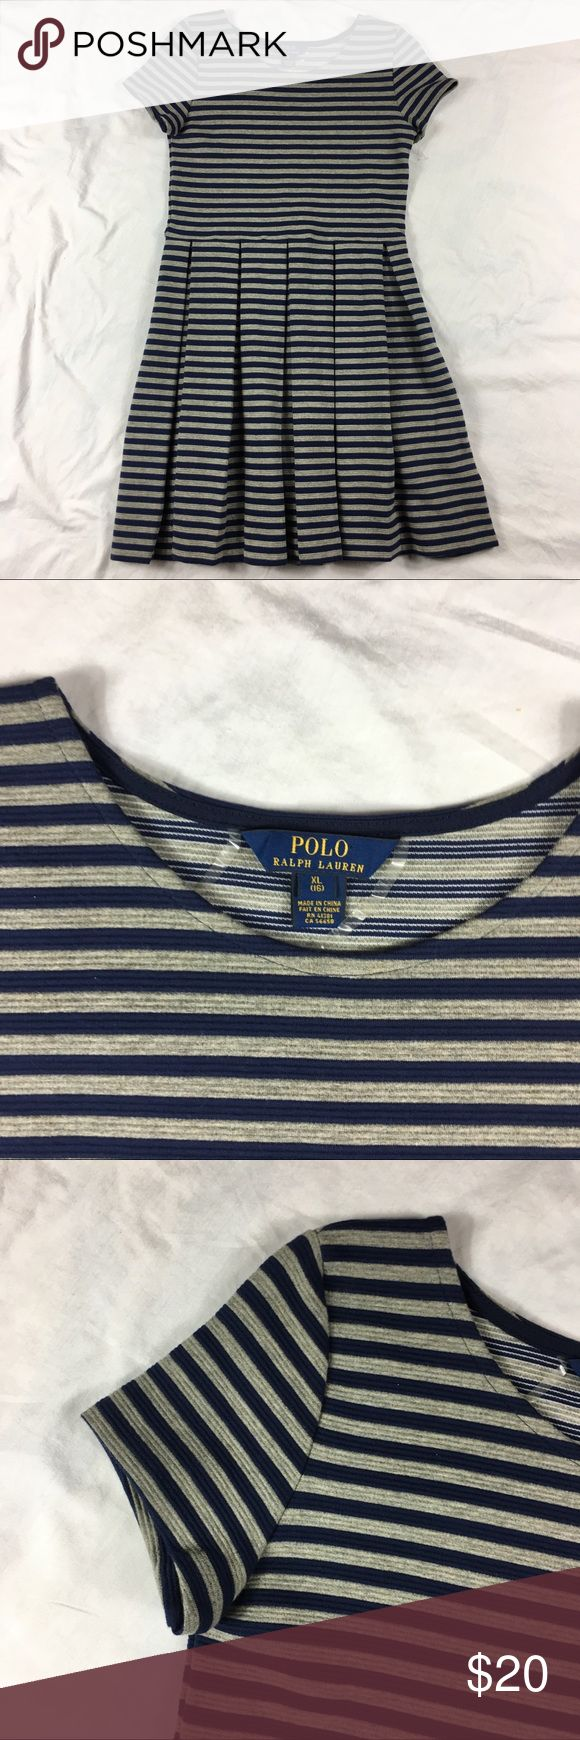 Polo Ralph Lauren short sleeve pleated dress Polo Ralph Lauren blue gray striped short sleeve pleated dress   Girl size: XL (16)   92% cotton, 7% polyester, 1% elastane   Machine washable   Approx measurements: armpit to armpit – 15 inches; length – 32 inches; sleeve- 5 1/2   Good used condition – see pictures Polo by Ralph Lauren Dresses Casual